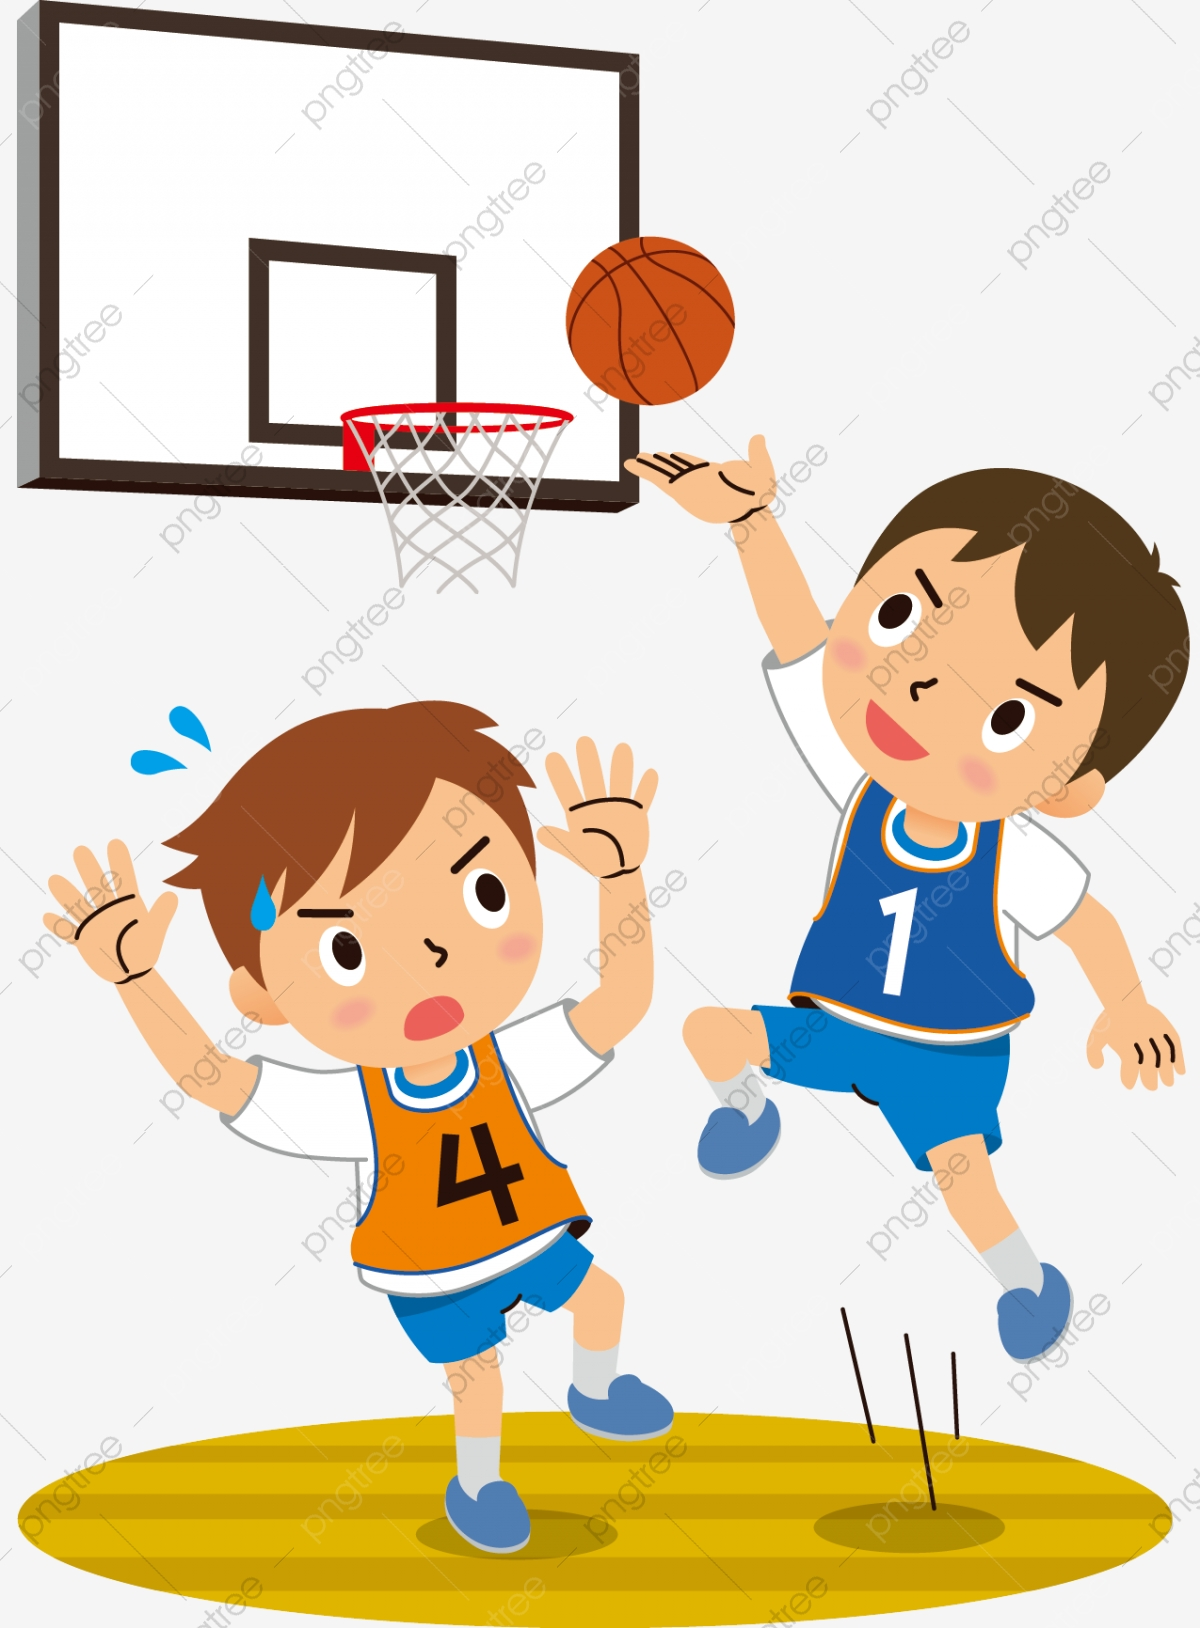 Hand Drawn Cartoon Teenager Playing Basketball Childrens Day Motion Play Basketball Jump Cute Cartoon Childrens Day Png And Vector With Transparent Background For Free Download